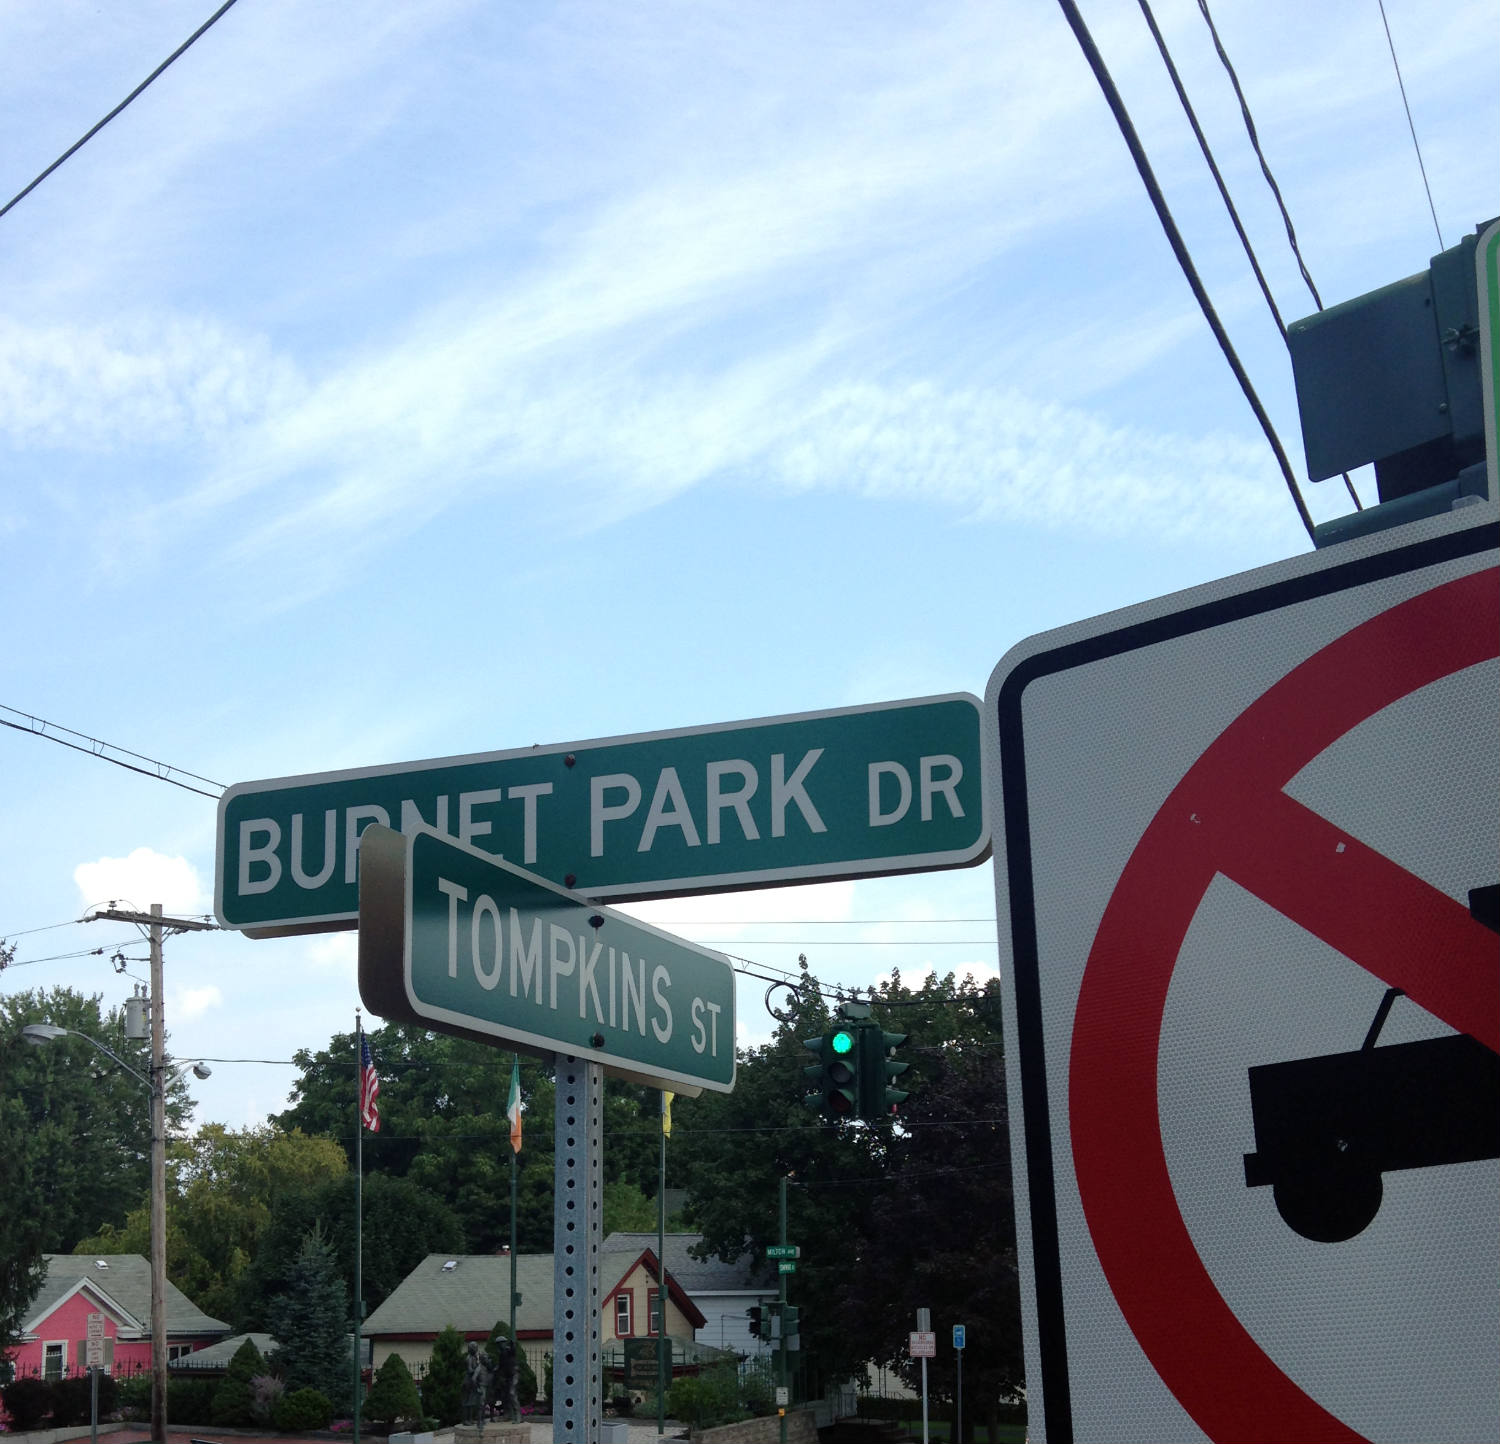 Burnet Park and Tompkins Intersection Signs in Tipperary Hill